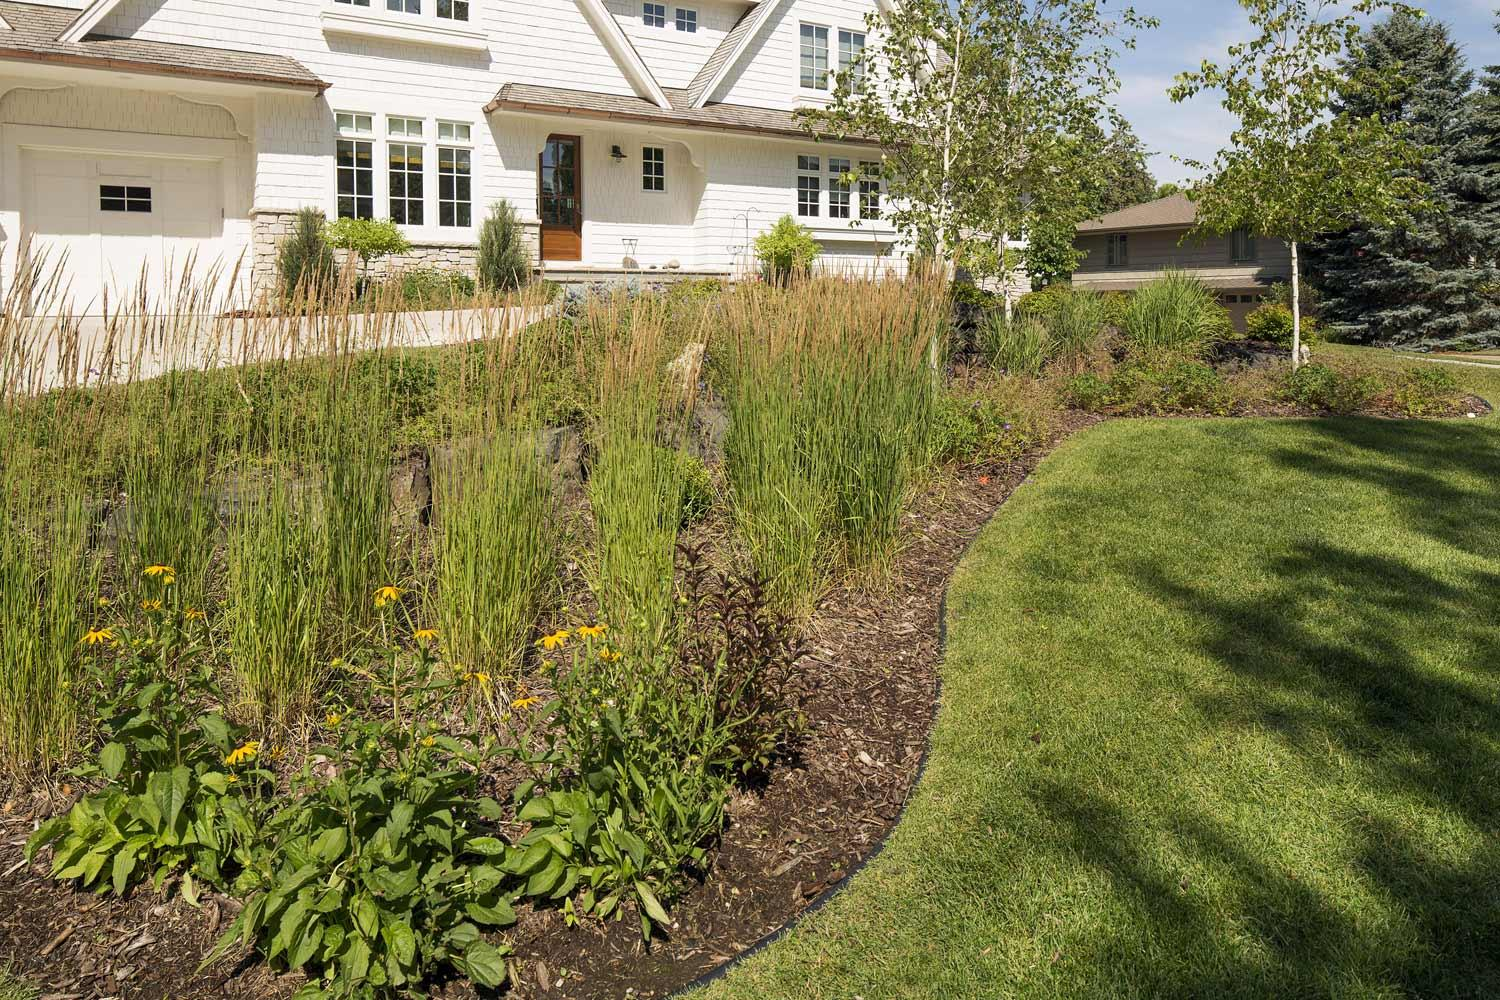 Landscaped garden with curving edges and native grasses in Edina, MN